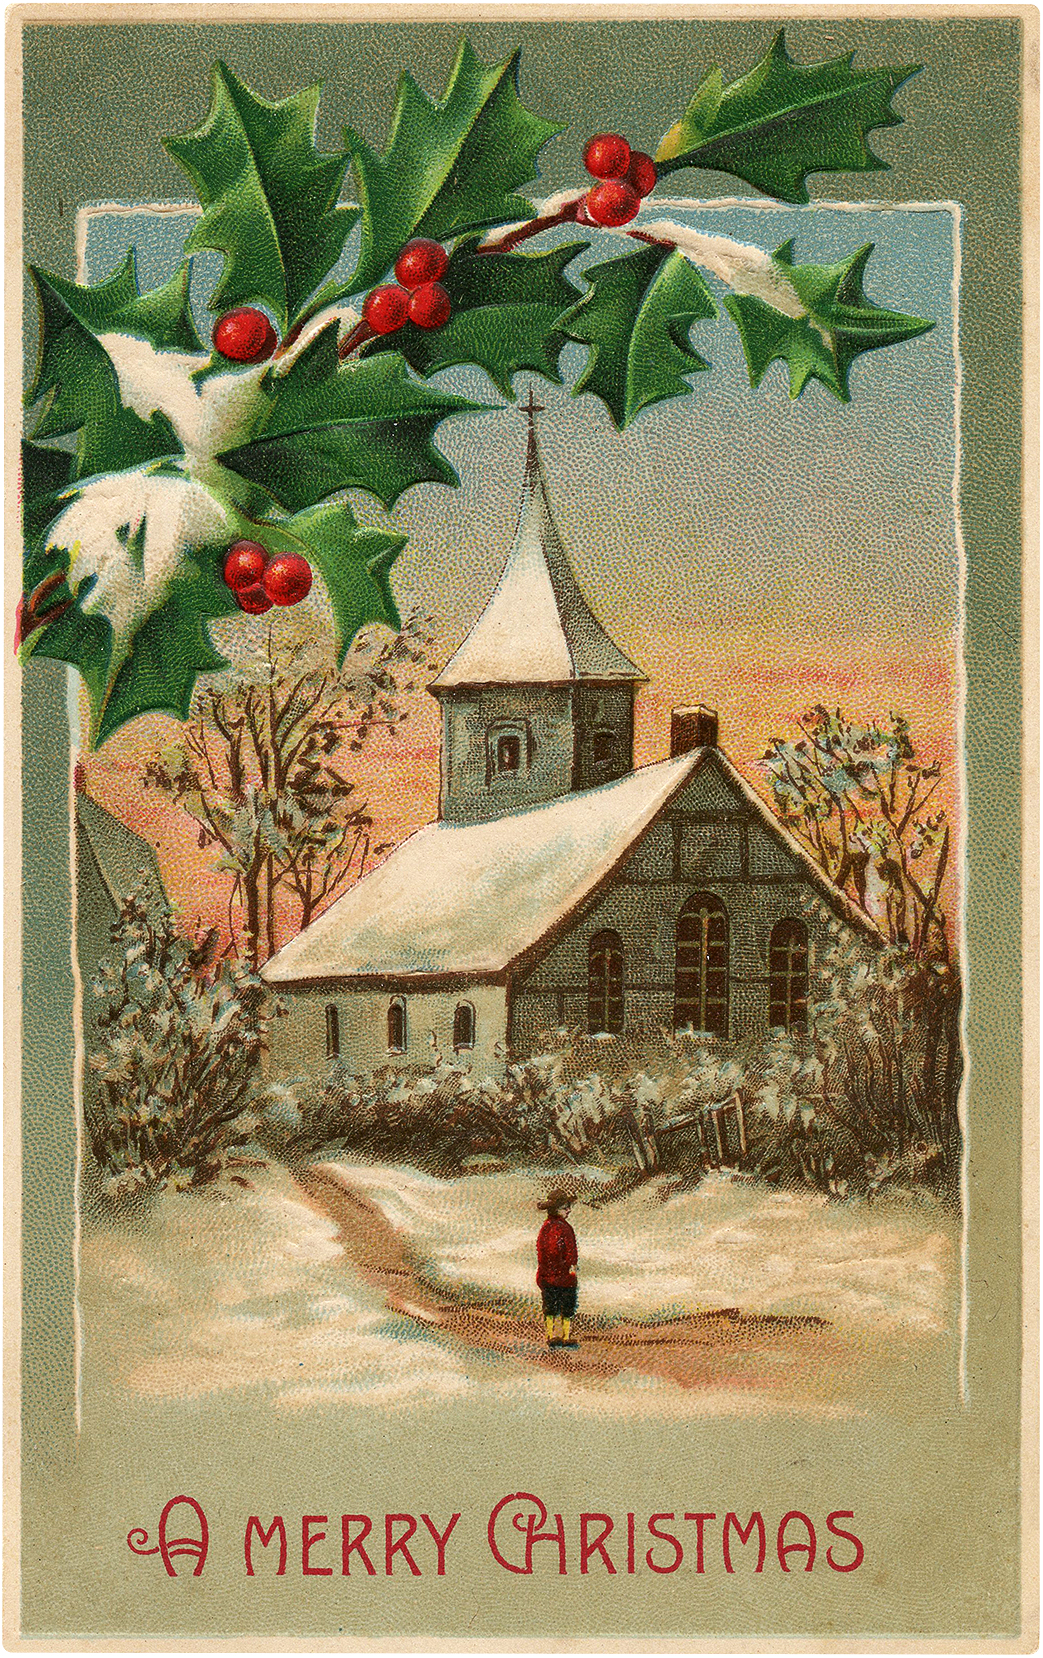 Old French Church at Christmas Image!